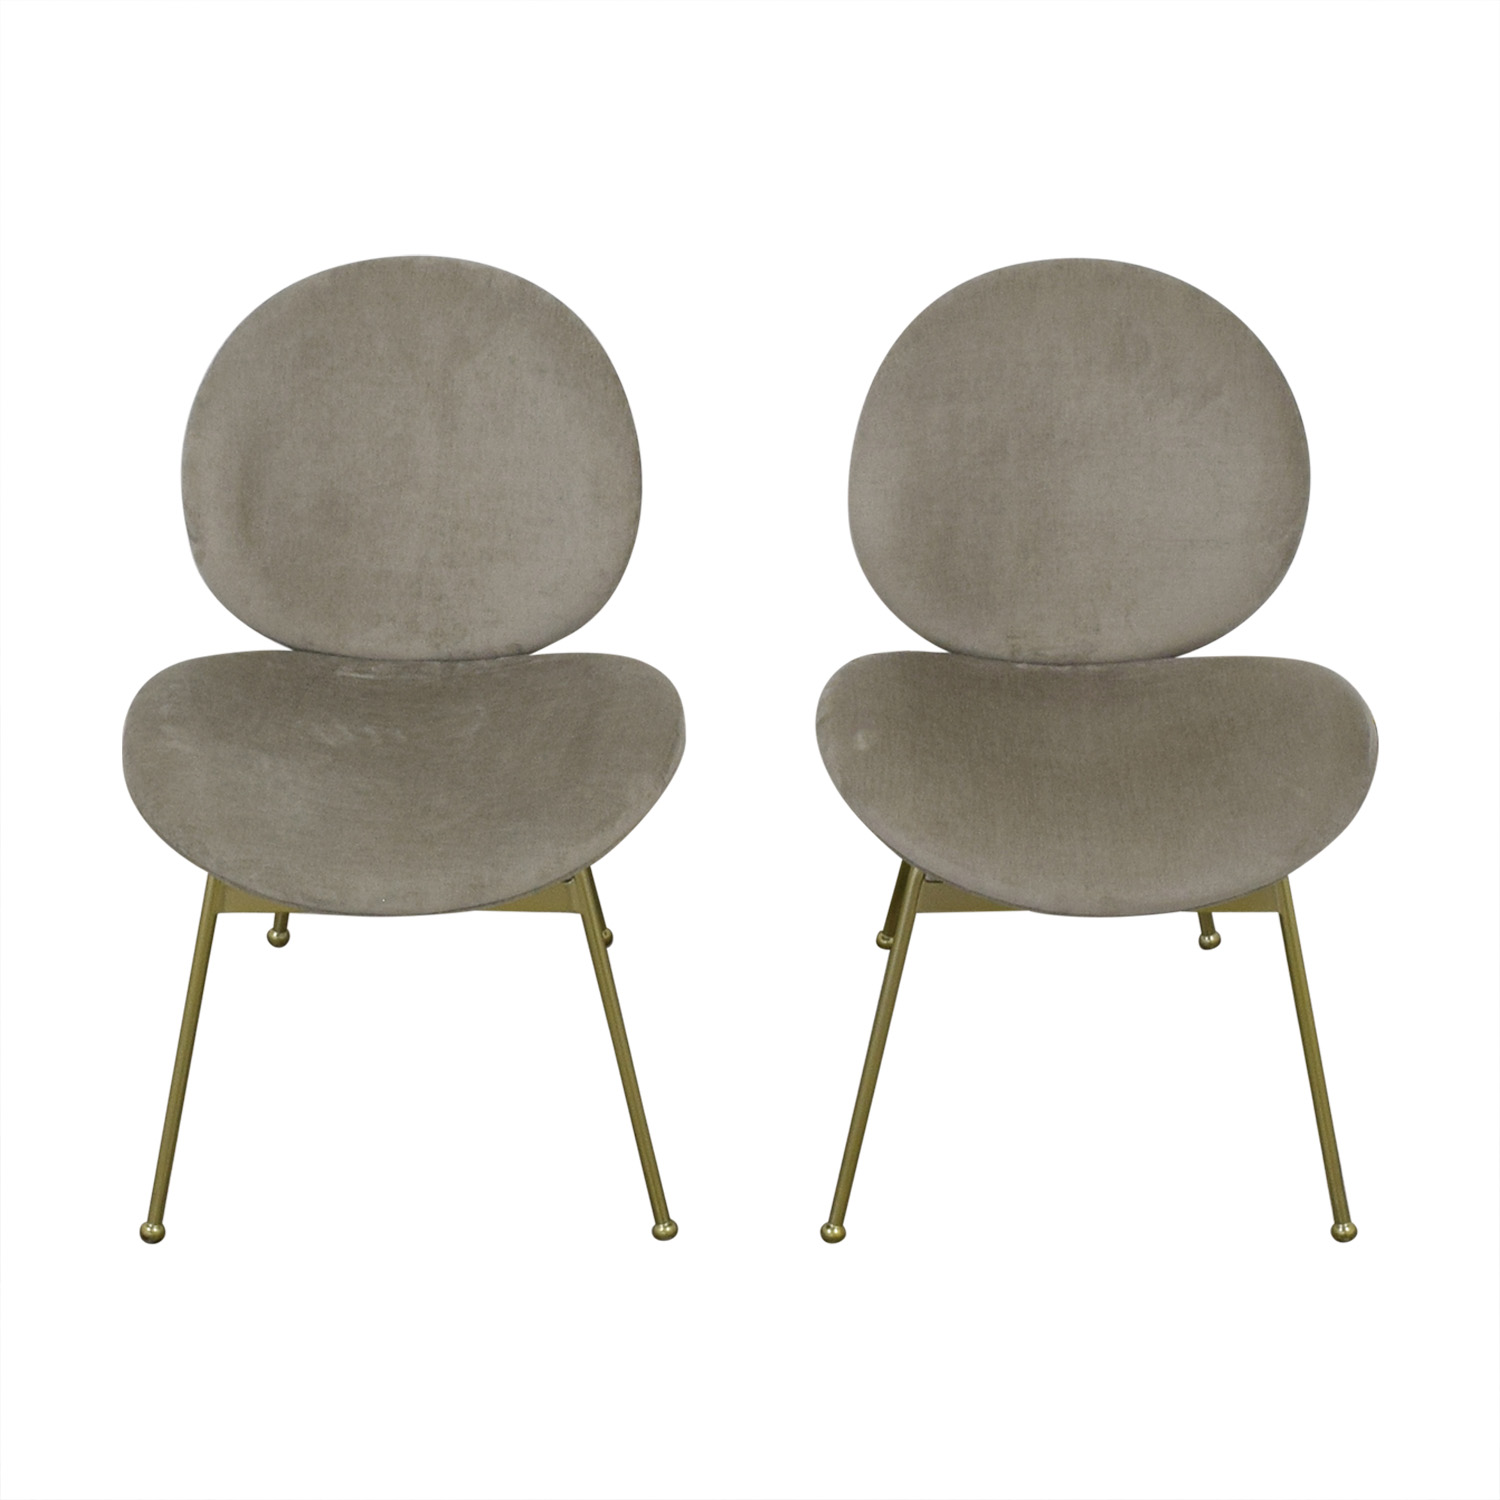 West Elm West Elm Upholstered Dining Chair light gray